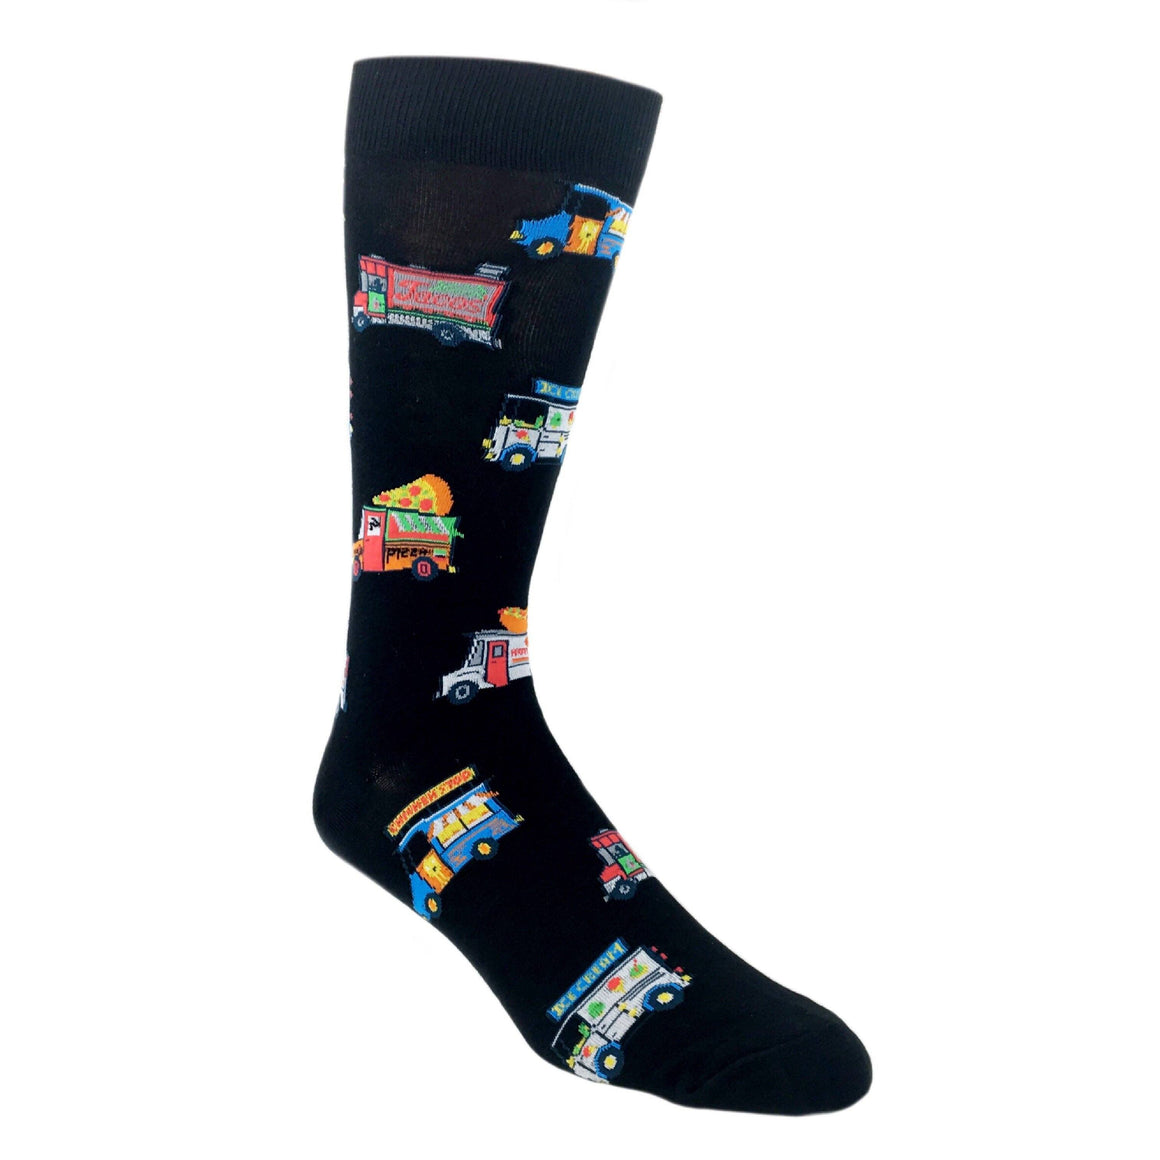 Food Truck Socks by K.Bell - The Sock Spot